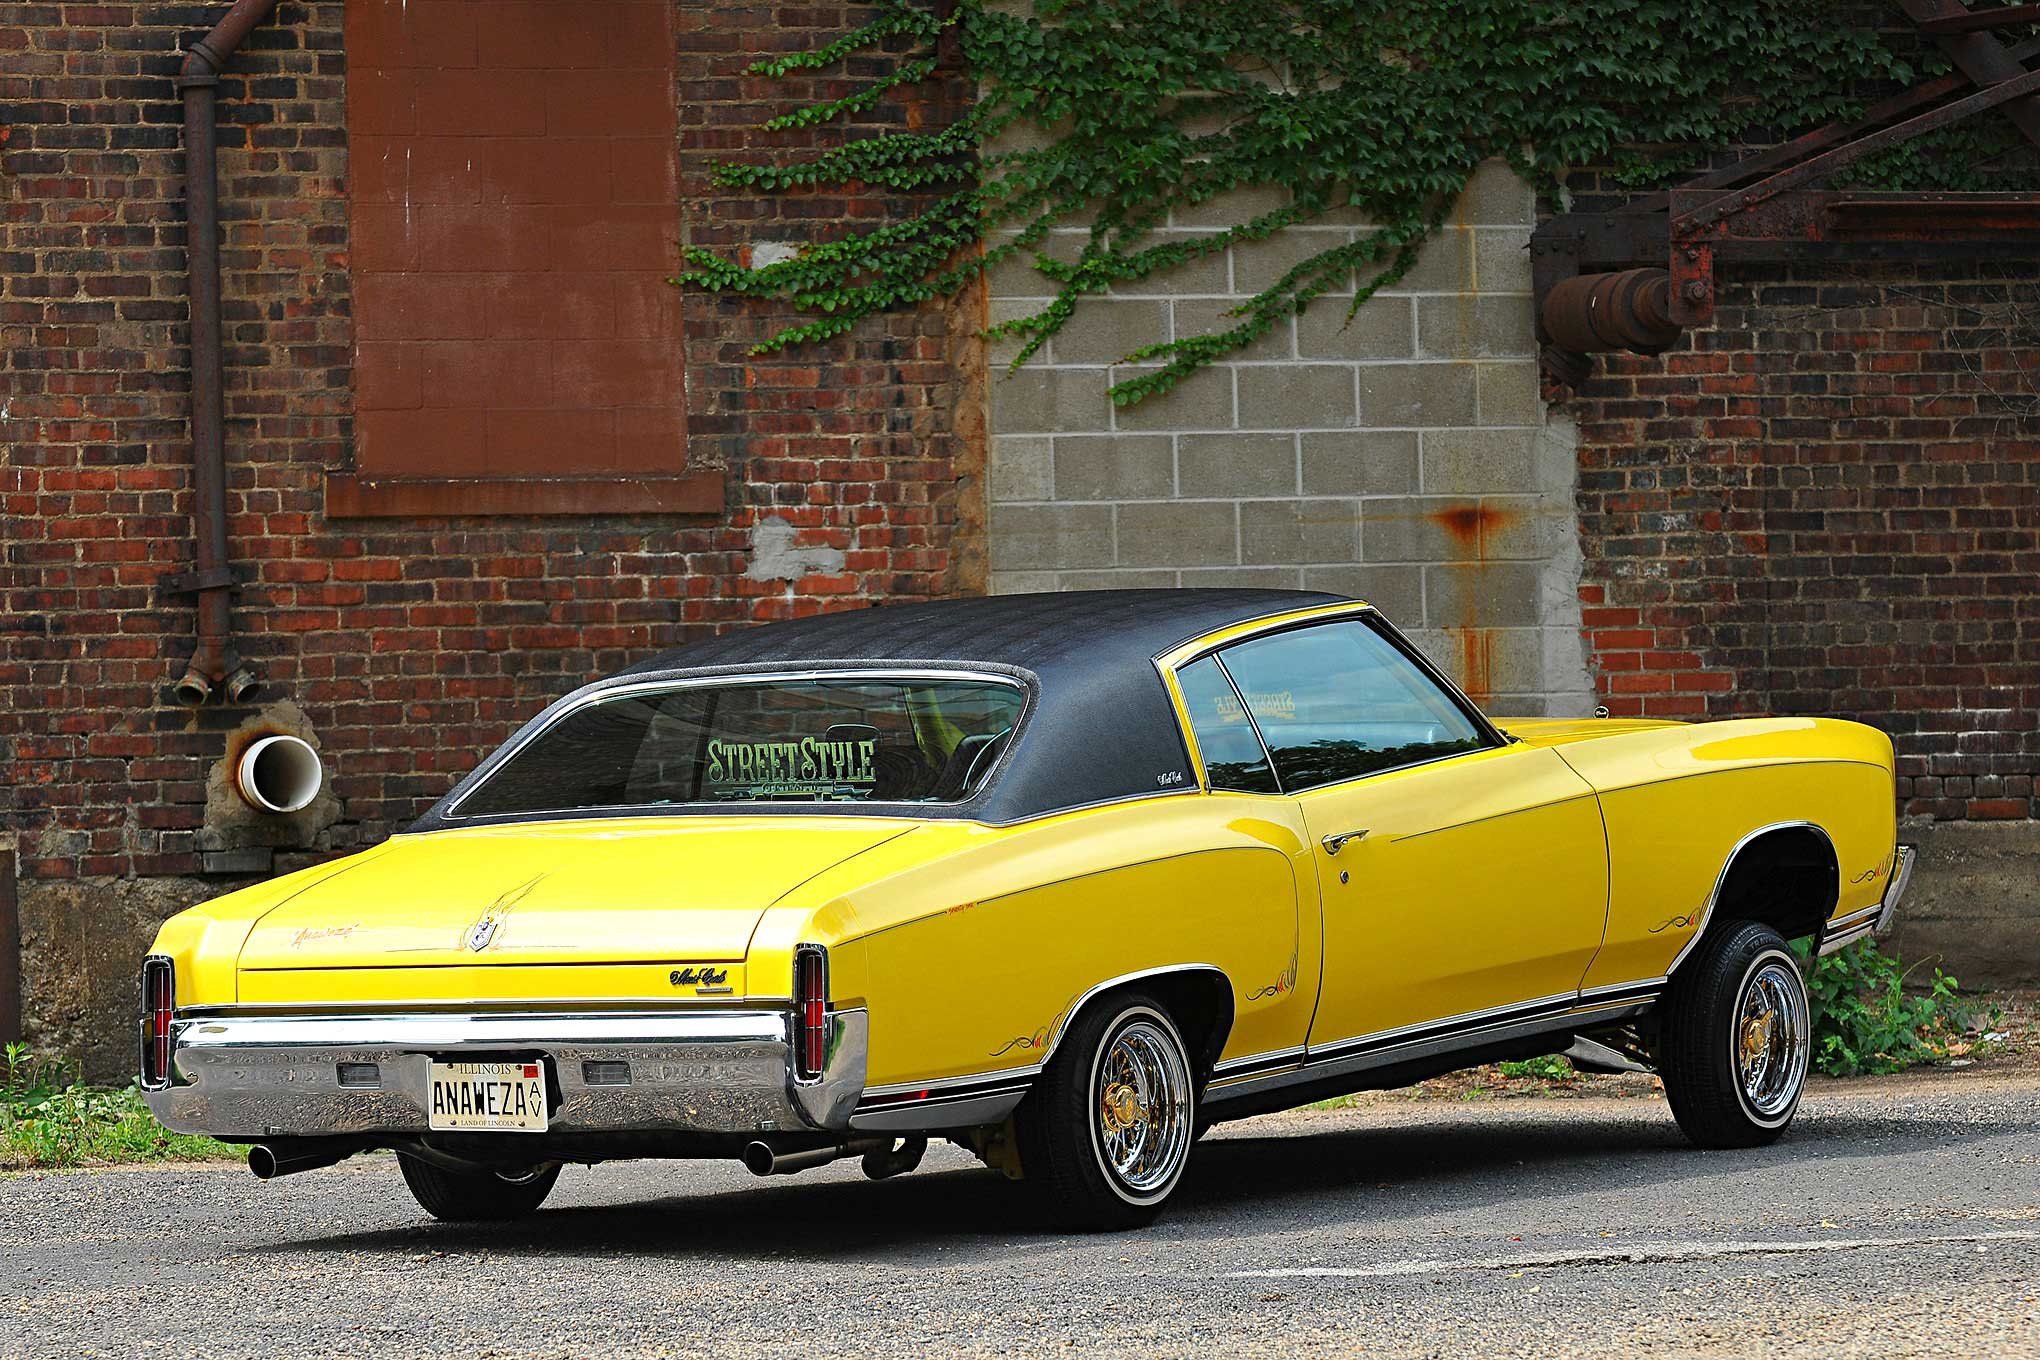 1971 Chevrolet Monte Carlo - A Blessing in Disguise